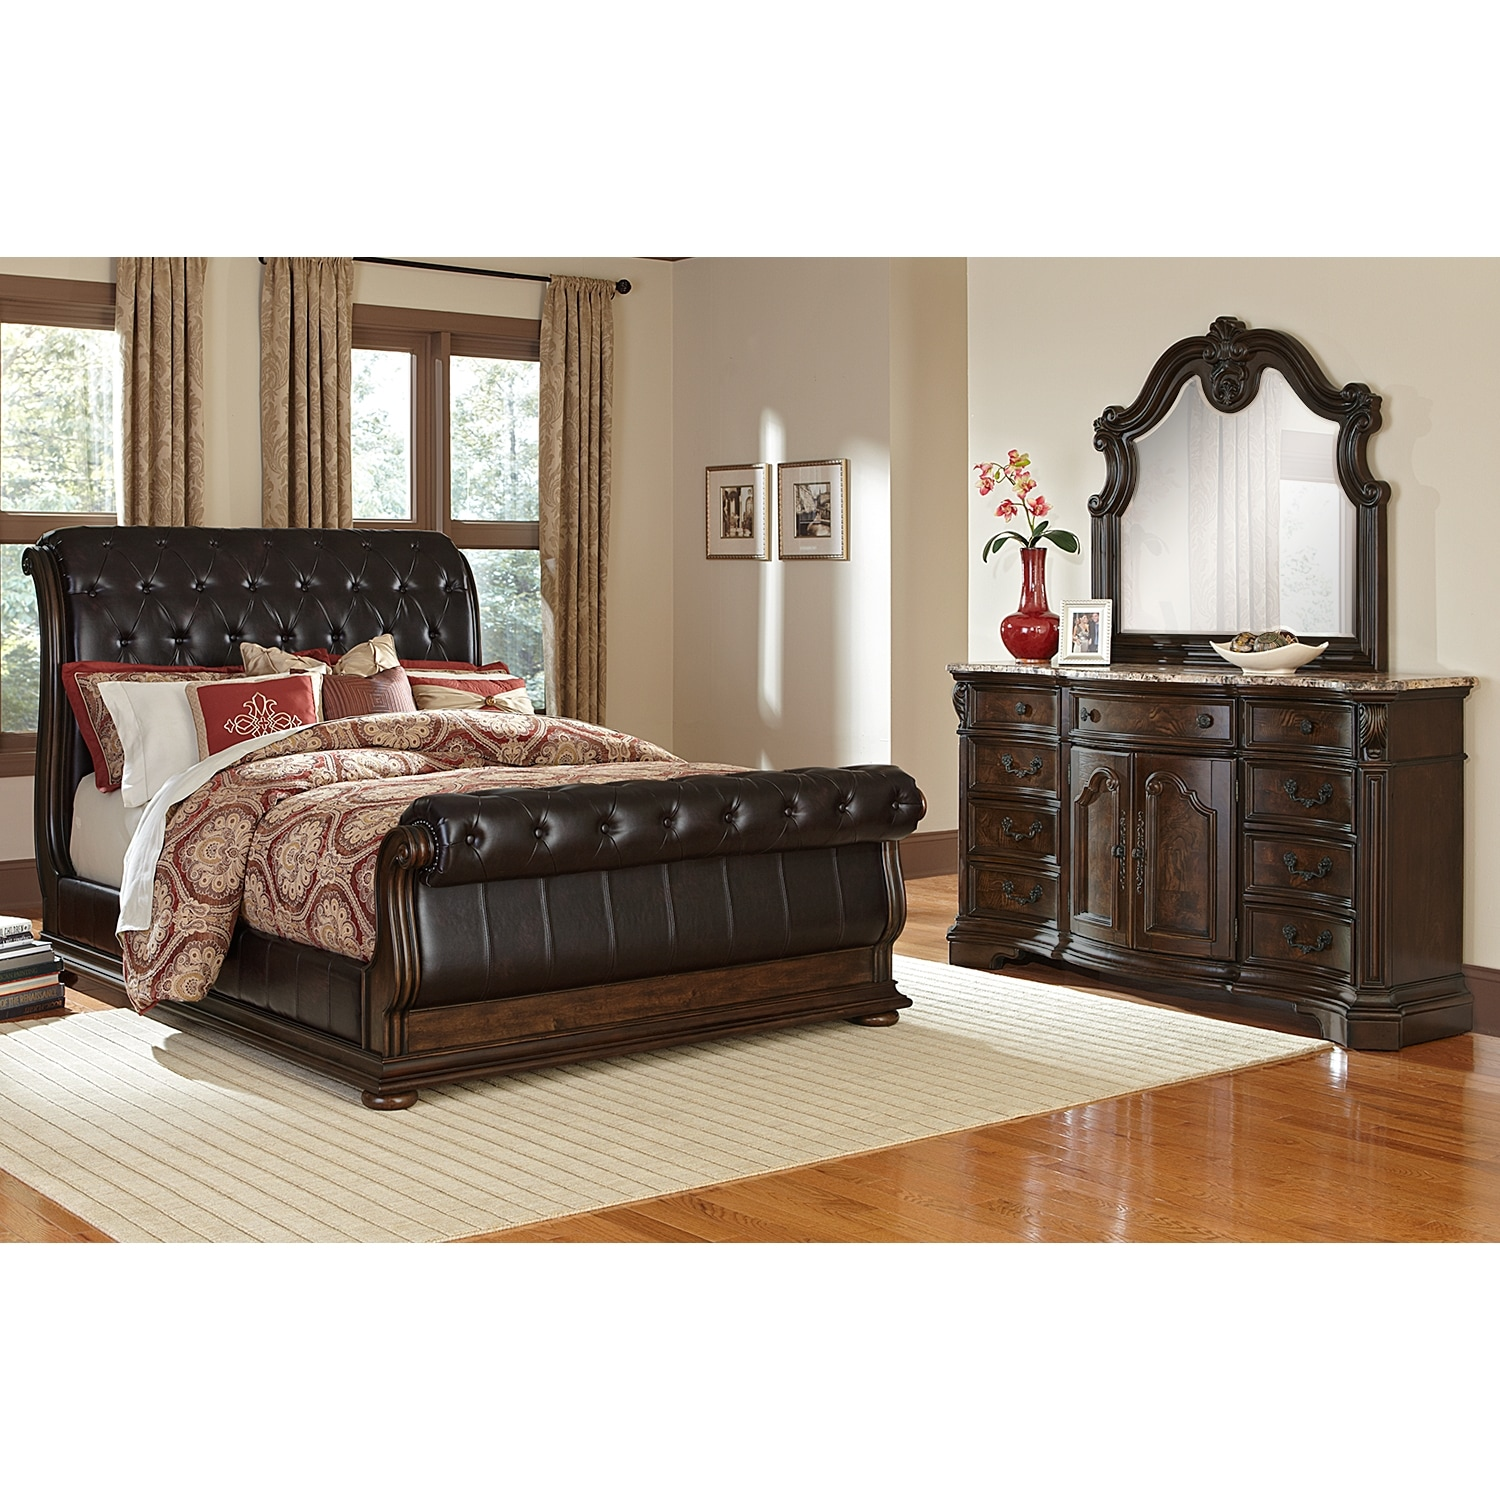 Monticello 5-Piece King Upholstered Sleigh Bedroom Set - Pecan ...